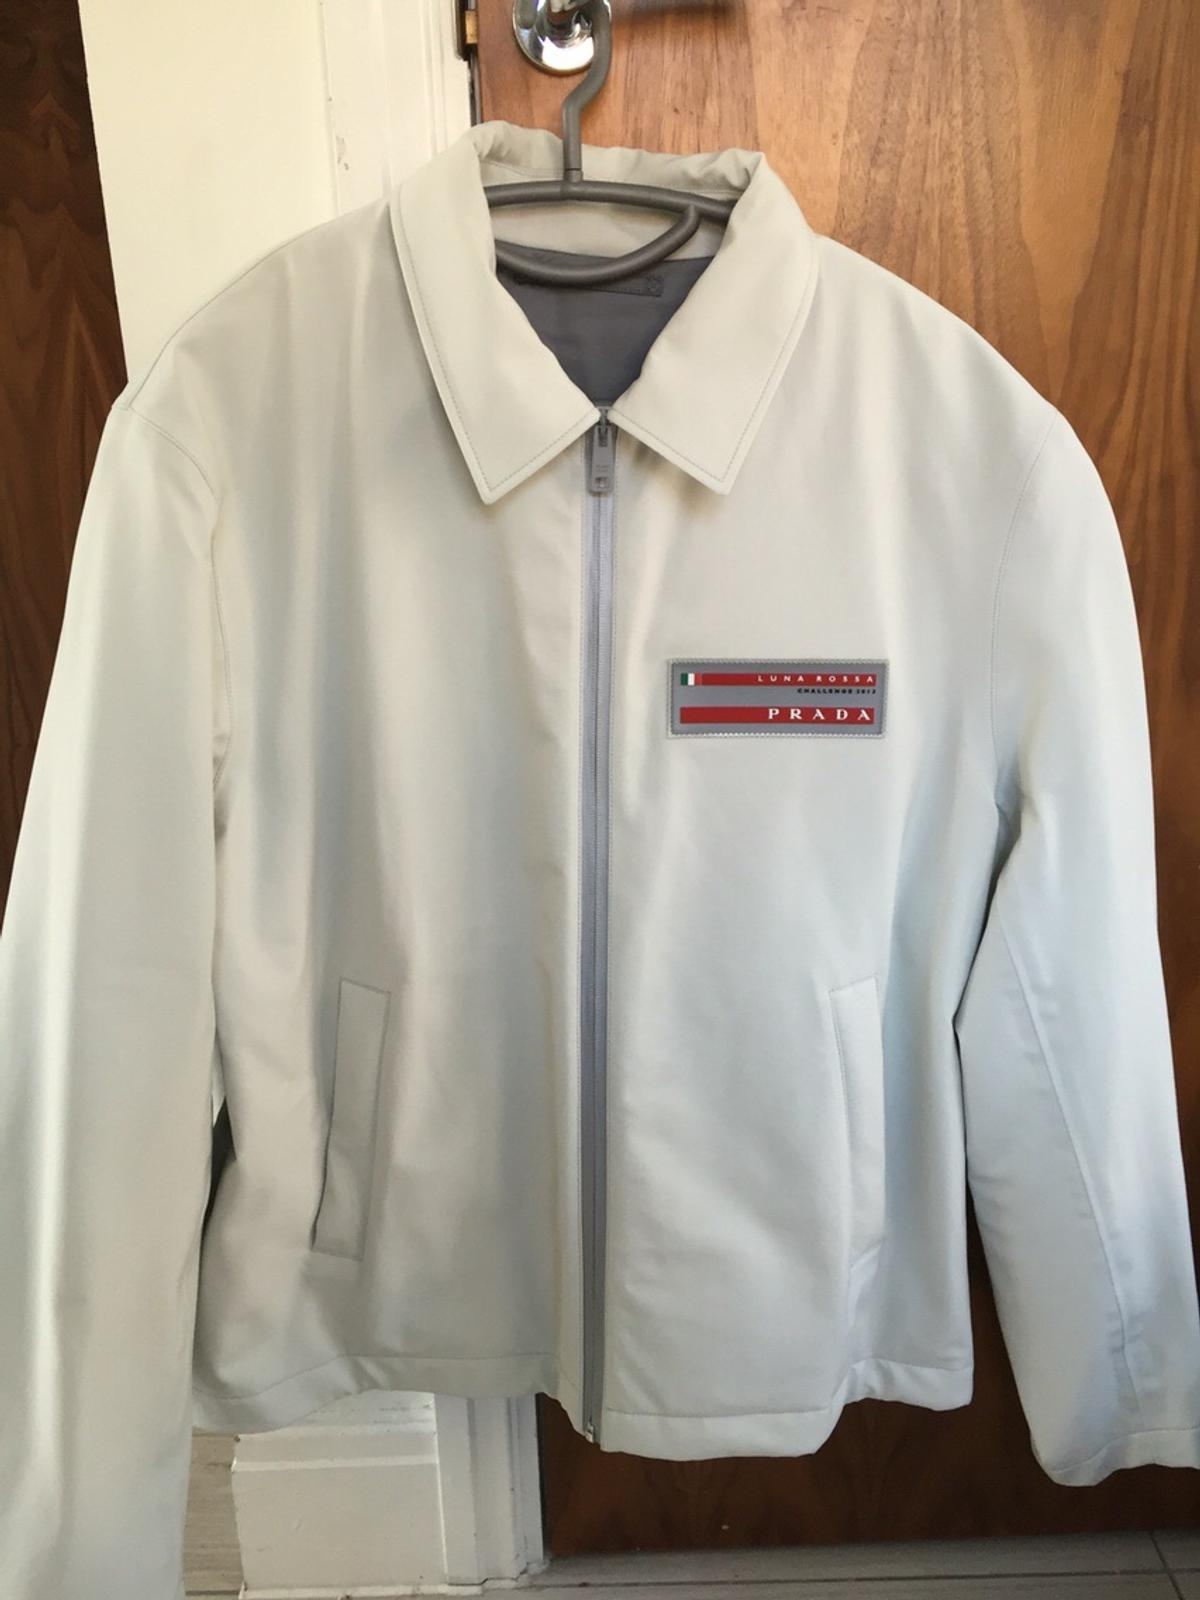 e4652b51da19f Prada Luna Rossa Sports Jacket in Havant for £100.00 for sale - Shpock